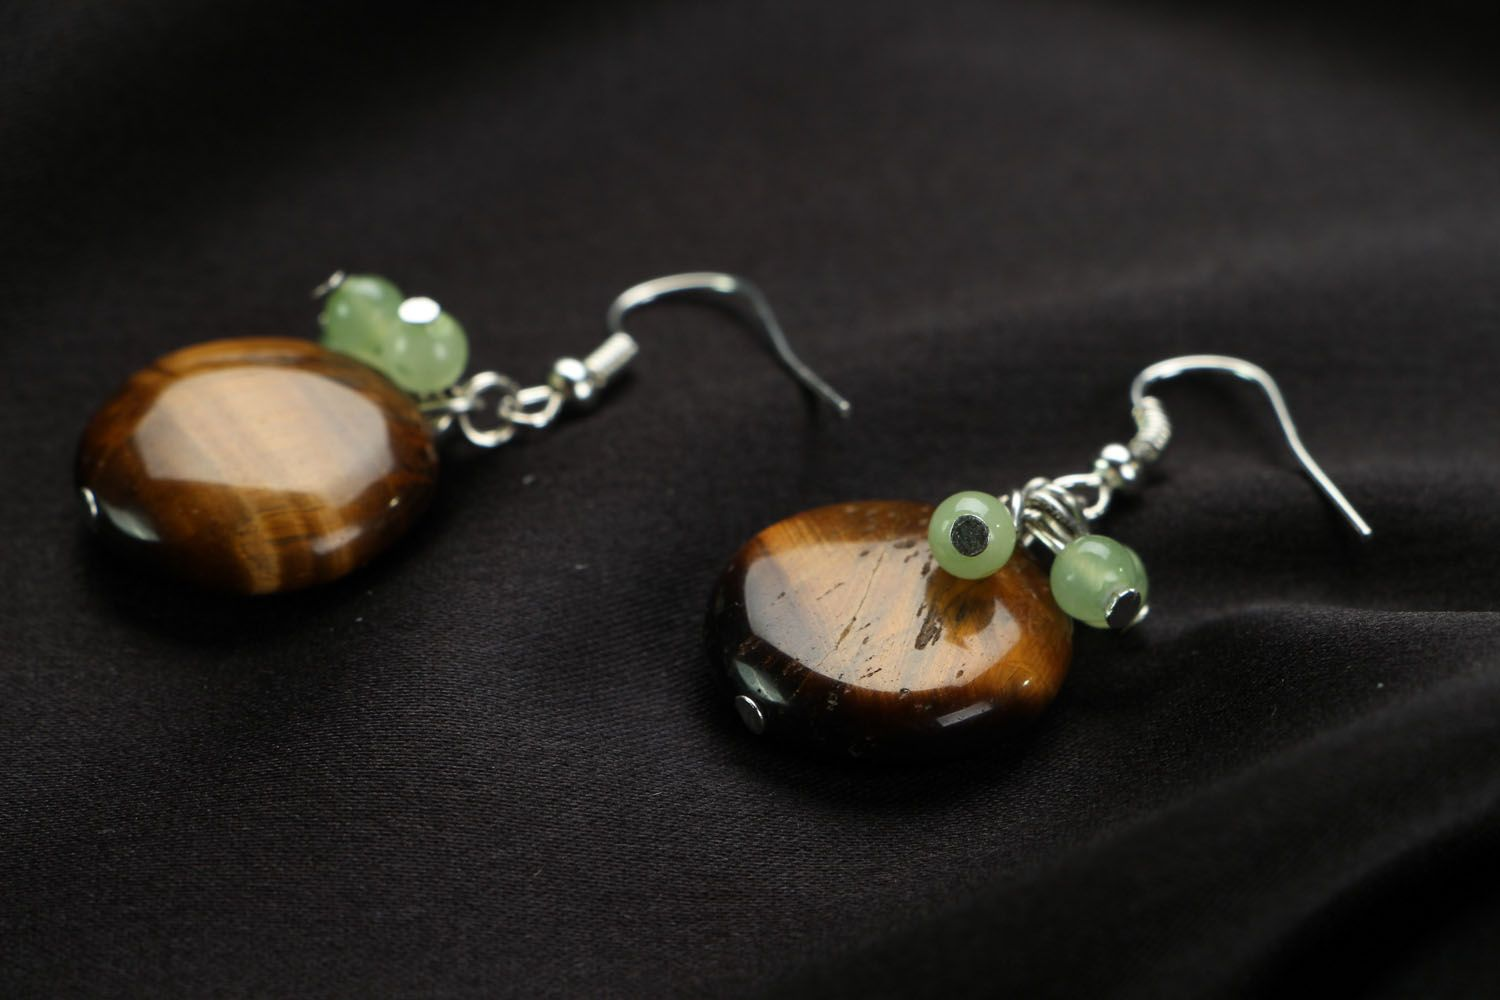 Earrings with chrysoprase and tiger's eye stones photo 2